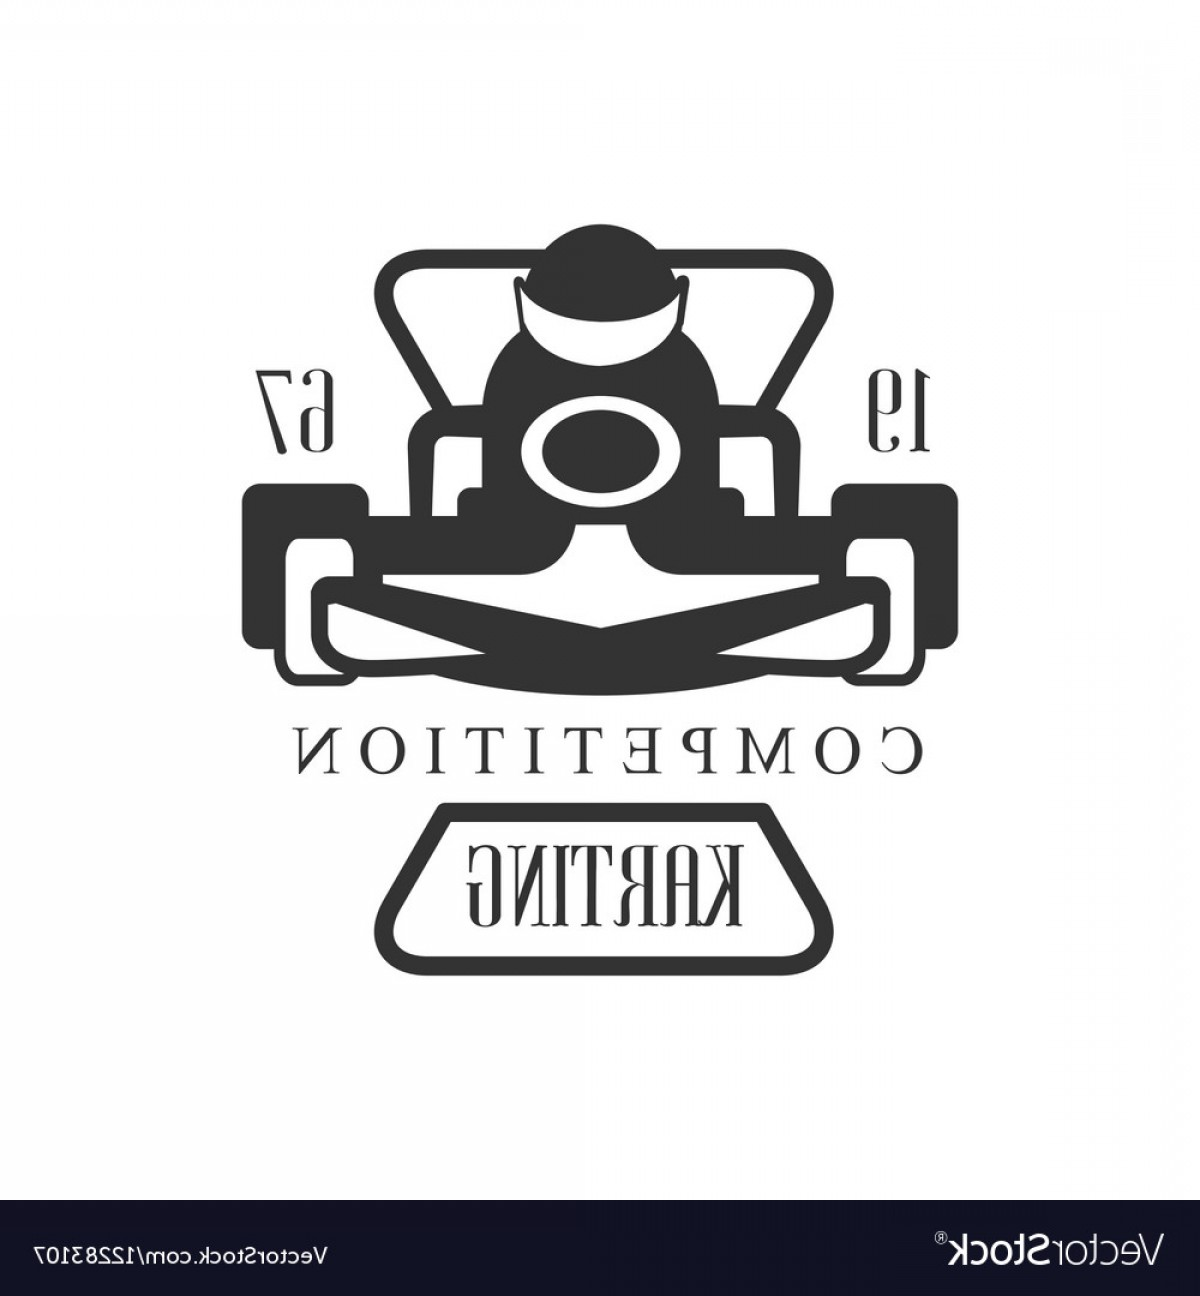 Black And White Vector Racing Graphics: Karting Club Racing Competition Black And White Vector